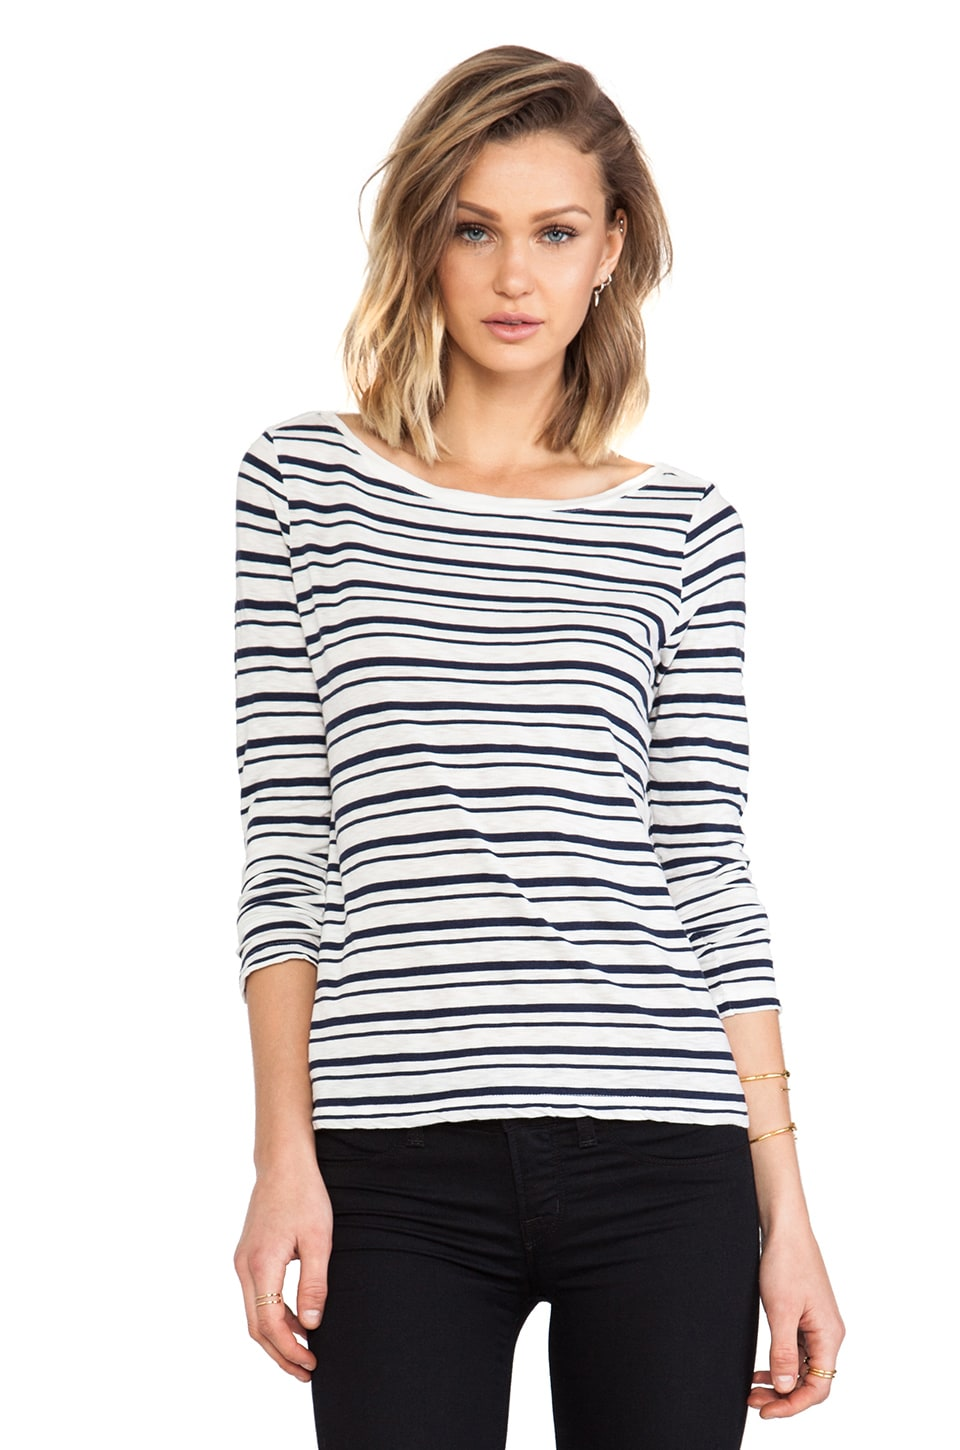 Splendid Vintage Coastal Stripe Long Sleeve Tee in White